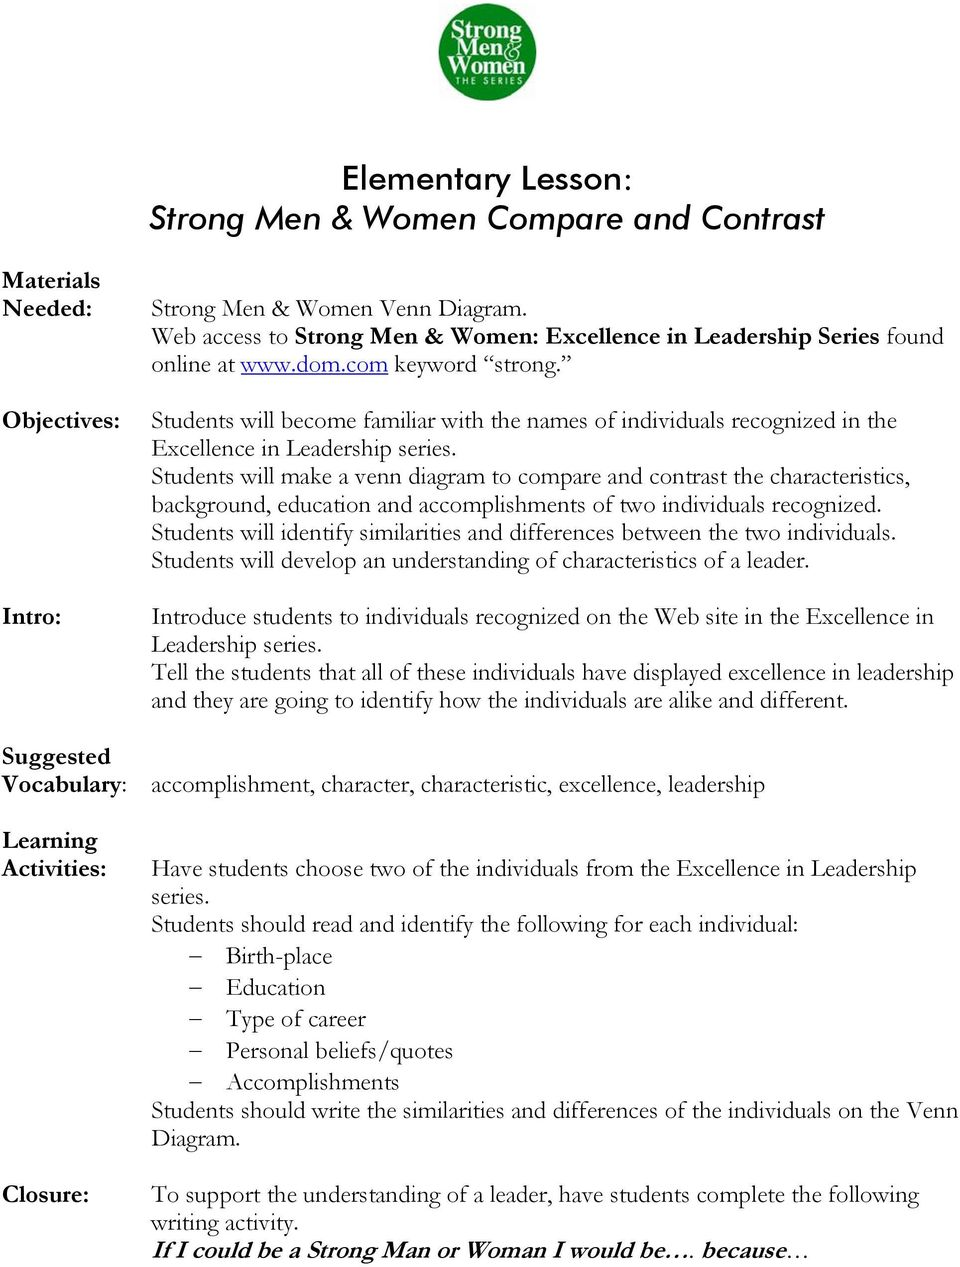 Strong Men Women Online Teaching Guide Table Of Contents